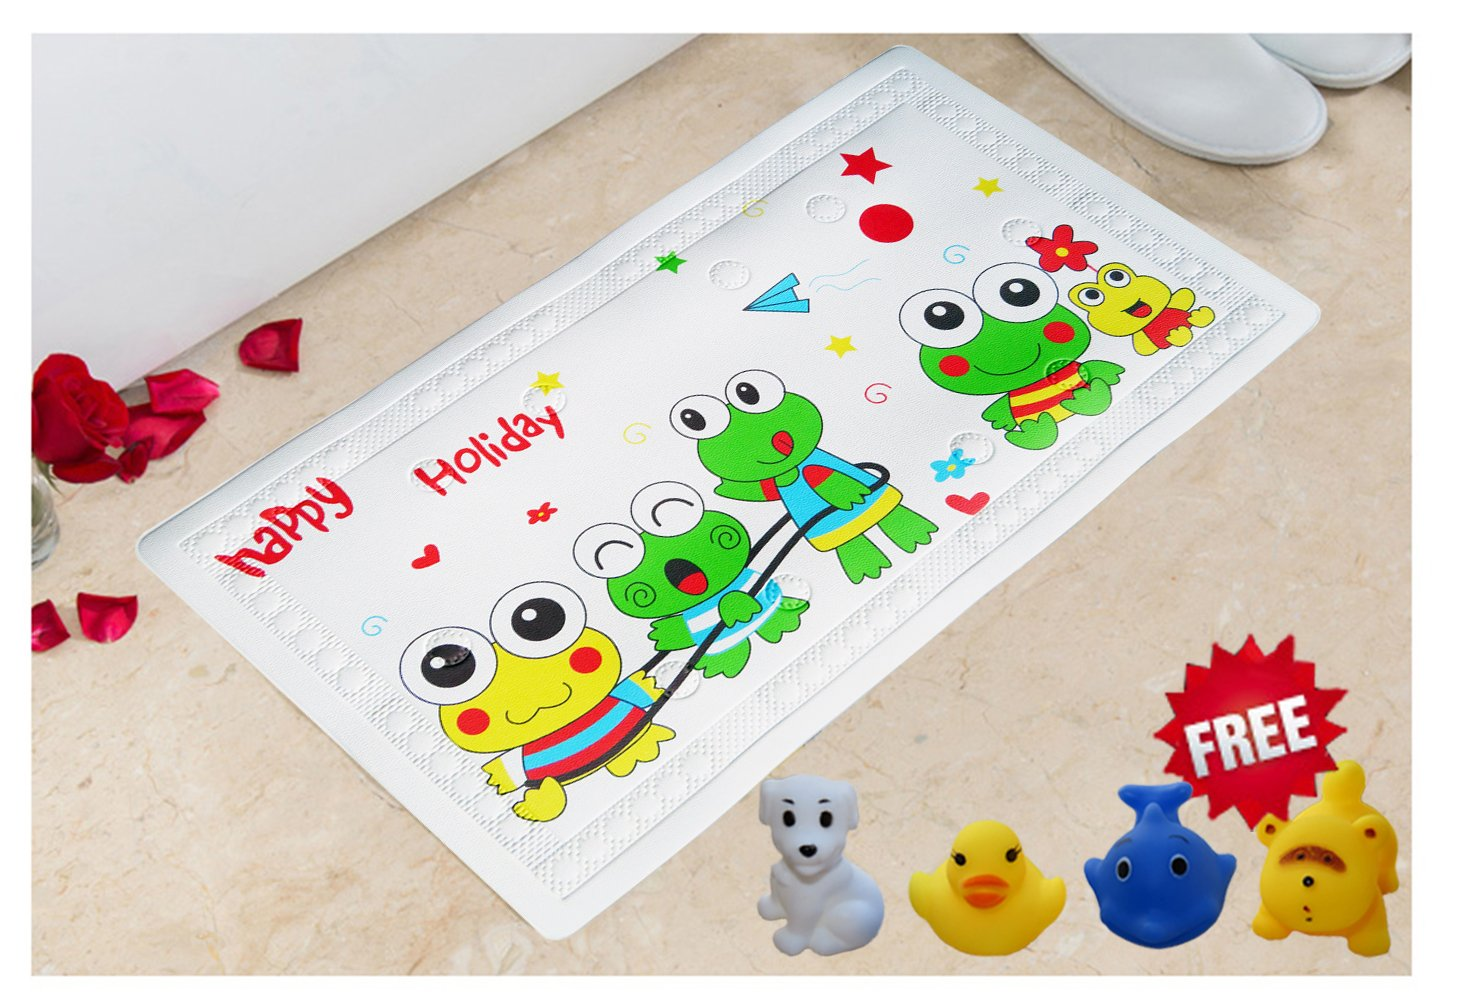 Littlefun Baby Non-Slip Bath Mat with Heat Sensitive Spot PVC for Home Bathroom Shower Kid Bath Toys Included(Frog Pattern) SYNCHKG099092